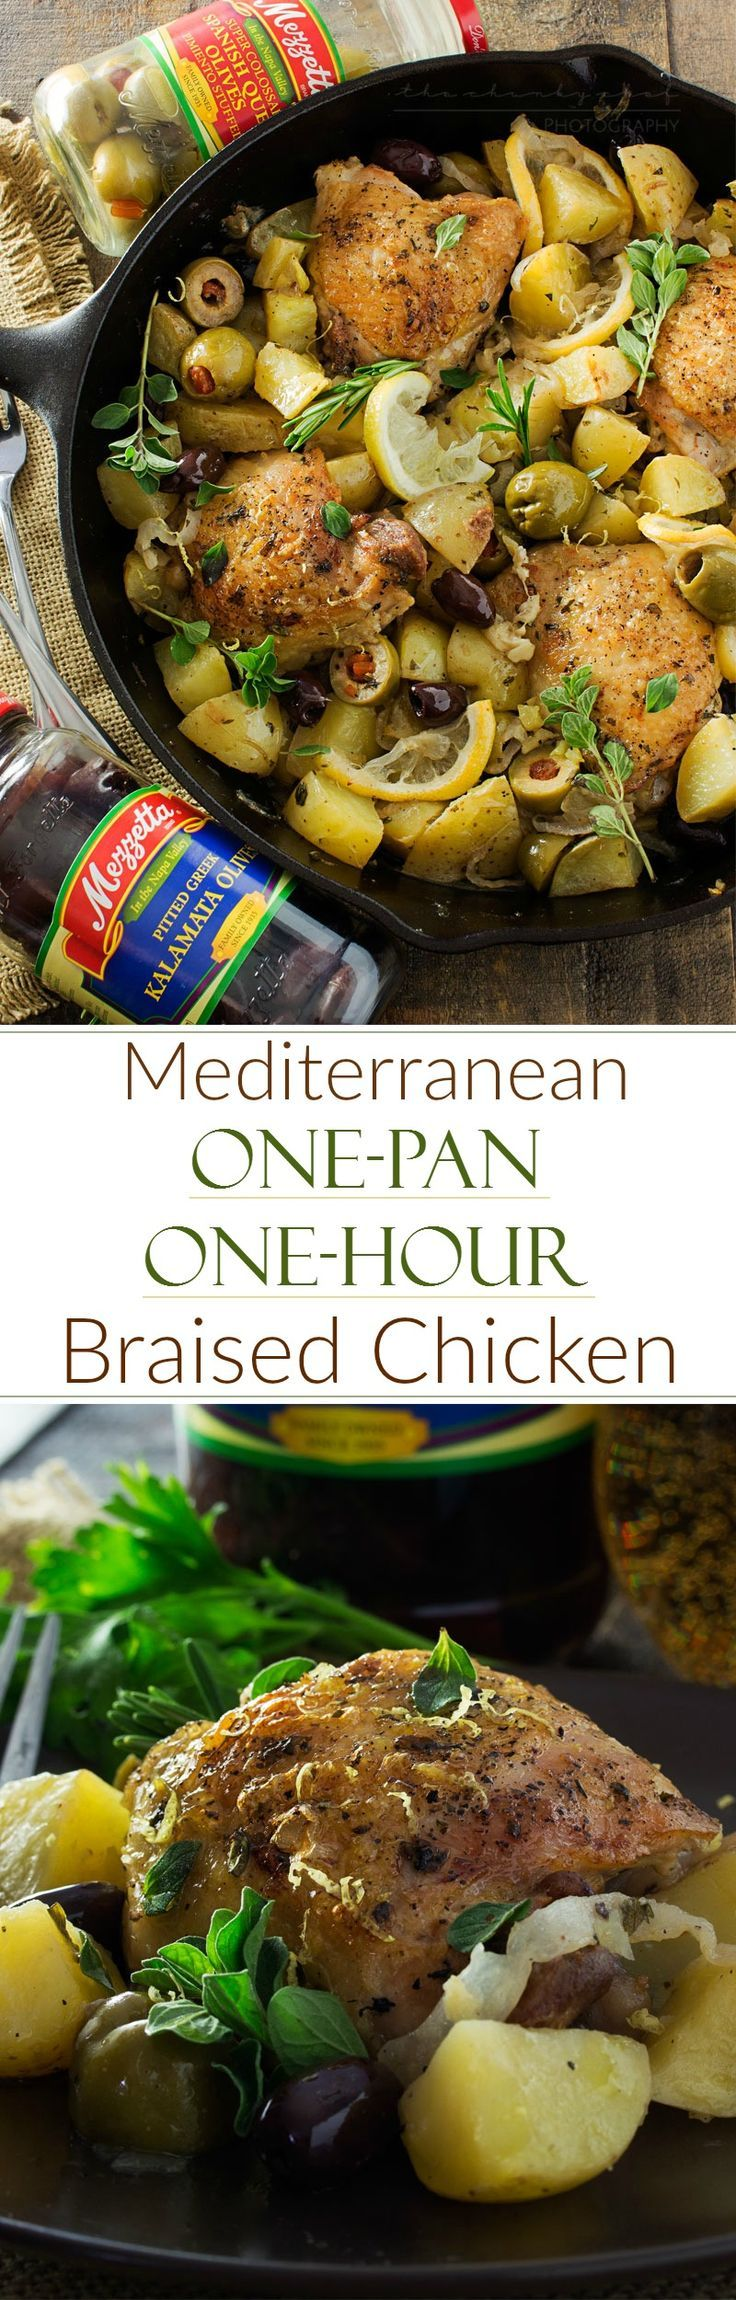 One Pan Mediterranean Braised Chicken   Fall in love with Mediterranean flavors with this easy and delicious one pan, one hour, braised chicken with creamy potatoes, roasted olives, bright lemon and f (Baking Potato In Oven)